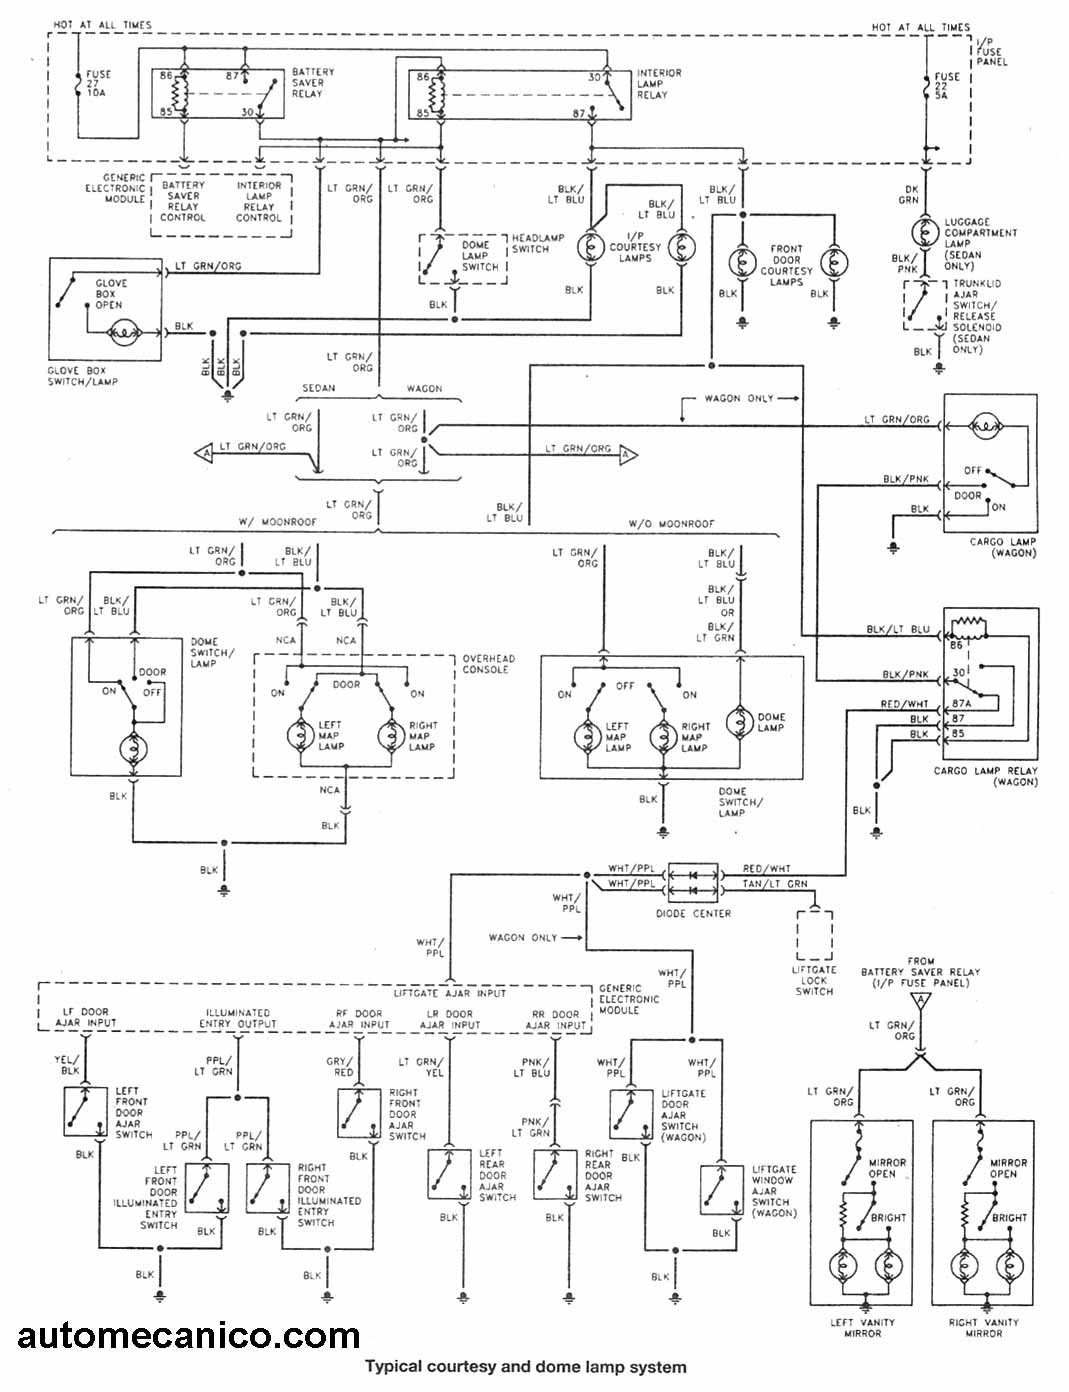 3 way toggle switch guitar wiring diagram diagramas de un relay de ford 1996 information of wiring br2020b100 wiring diagram